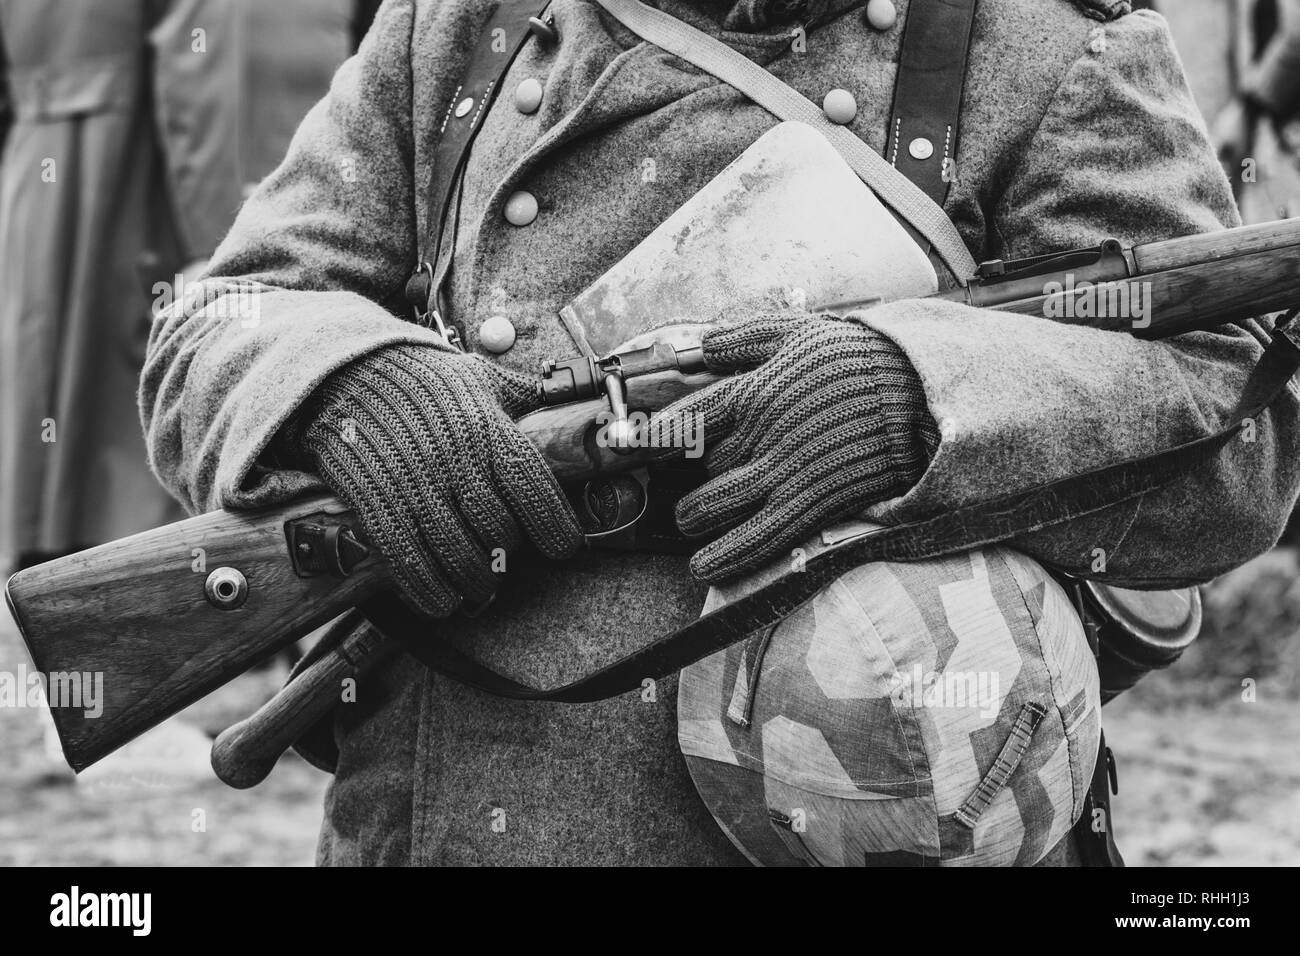 German Wehrmacht soldier with a Mauser rifle in his hands - Stock Image